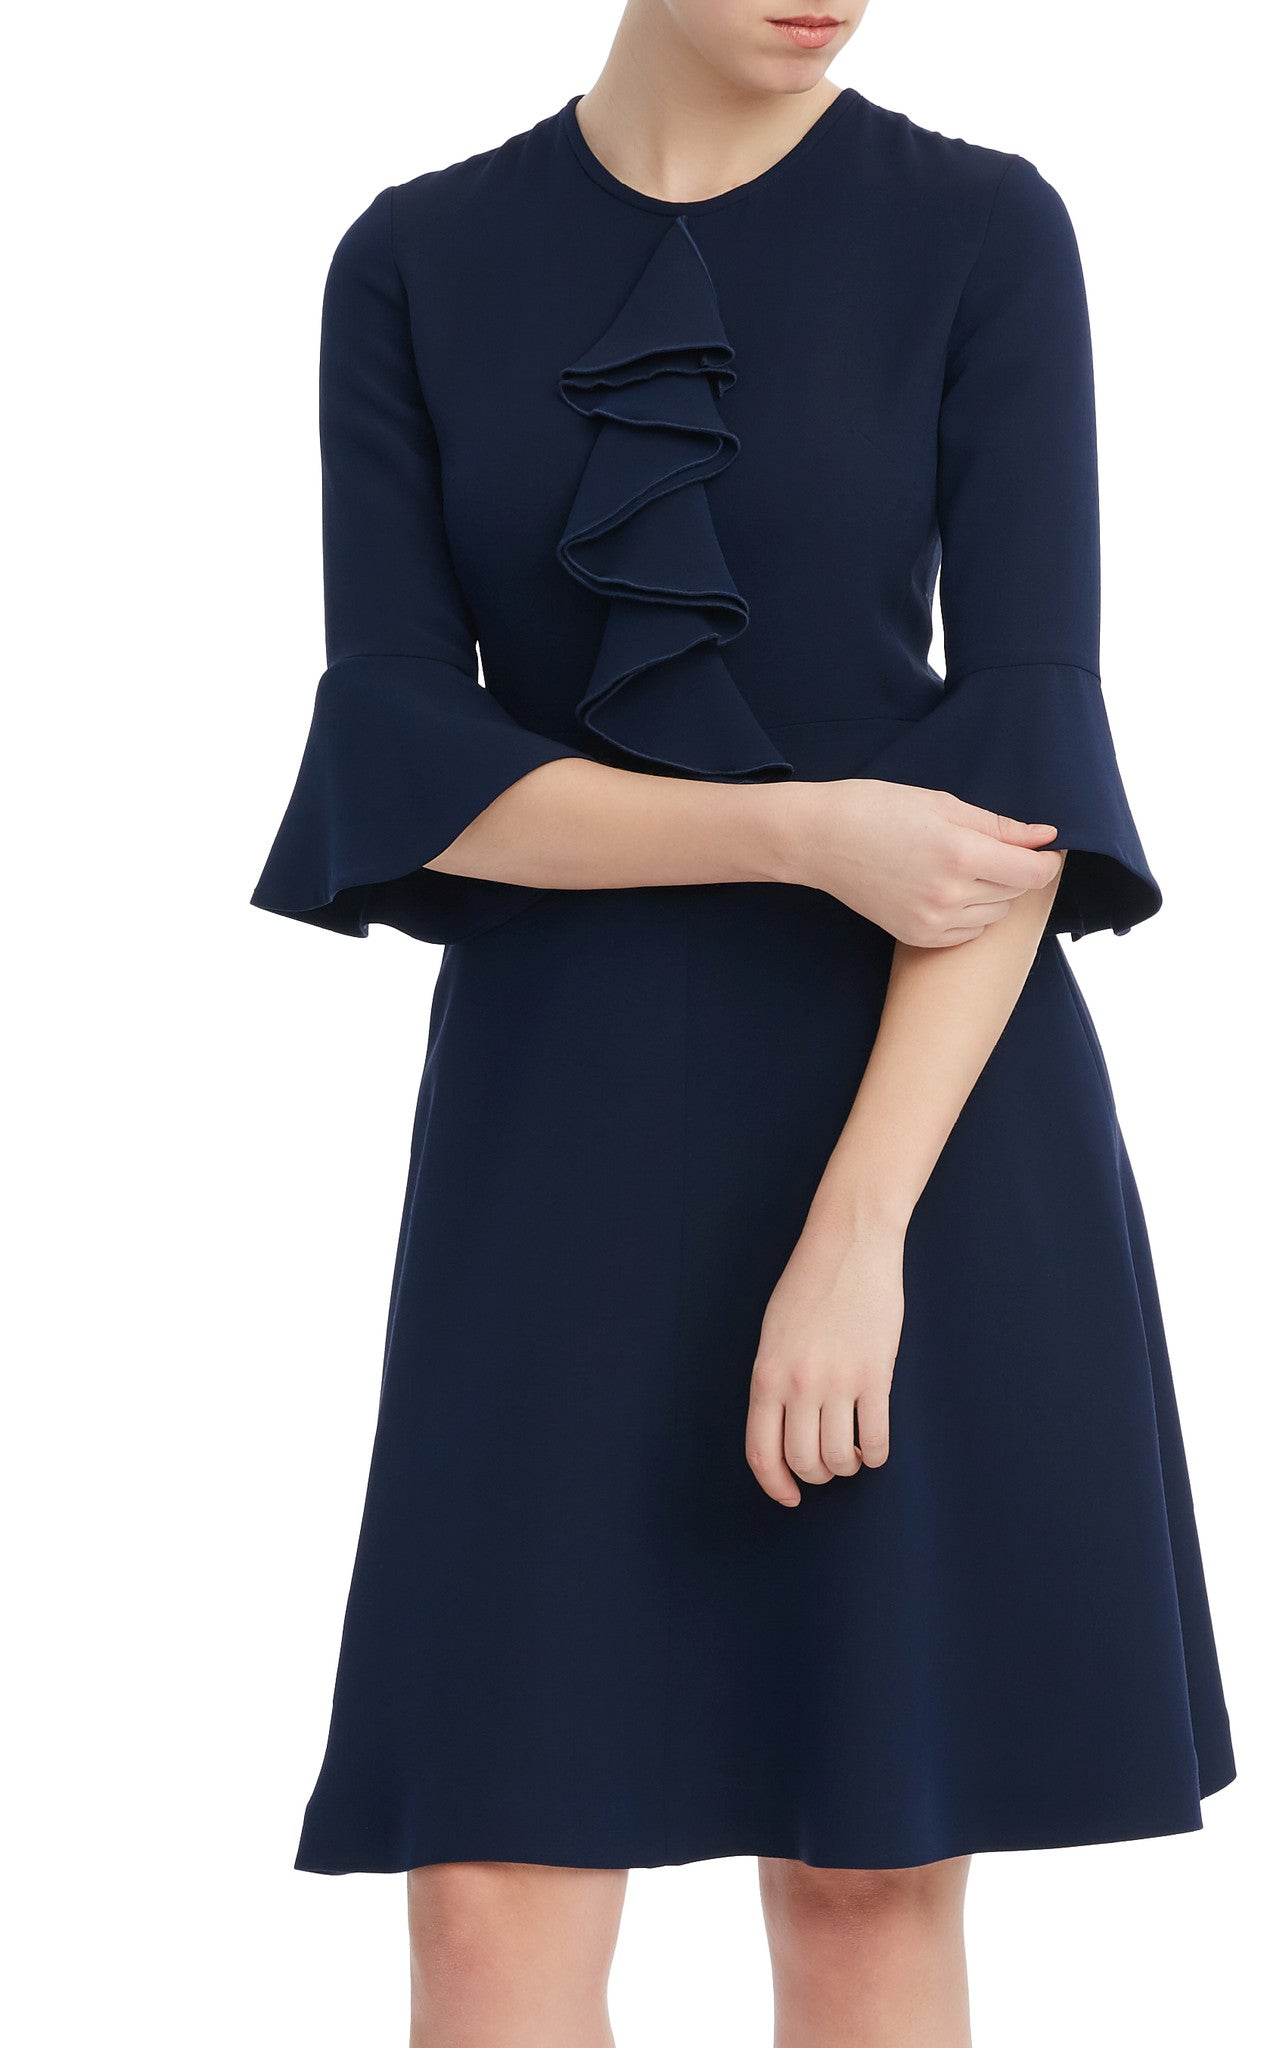 editions de robes SS17 collection work and cocktail joanne navy dress